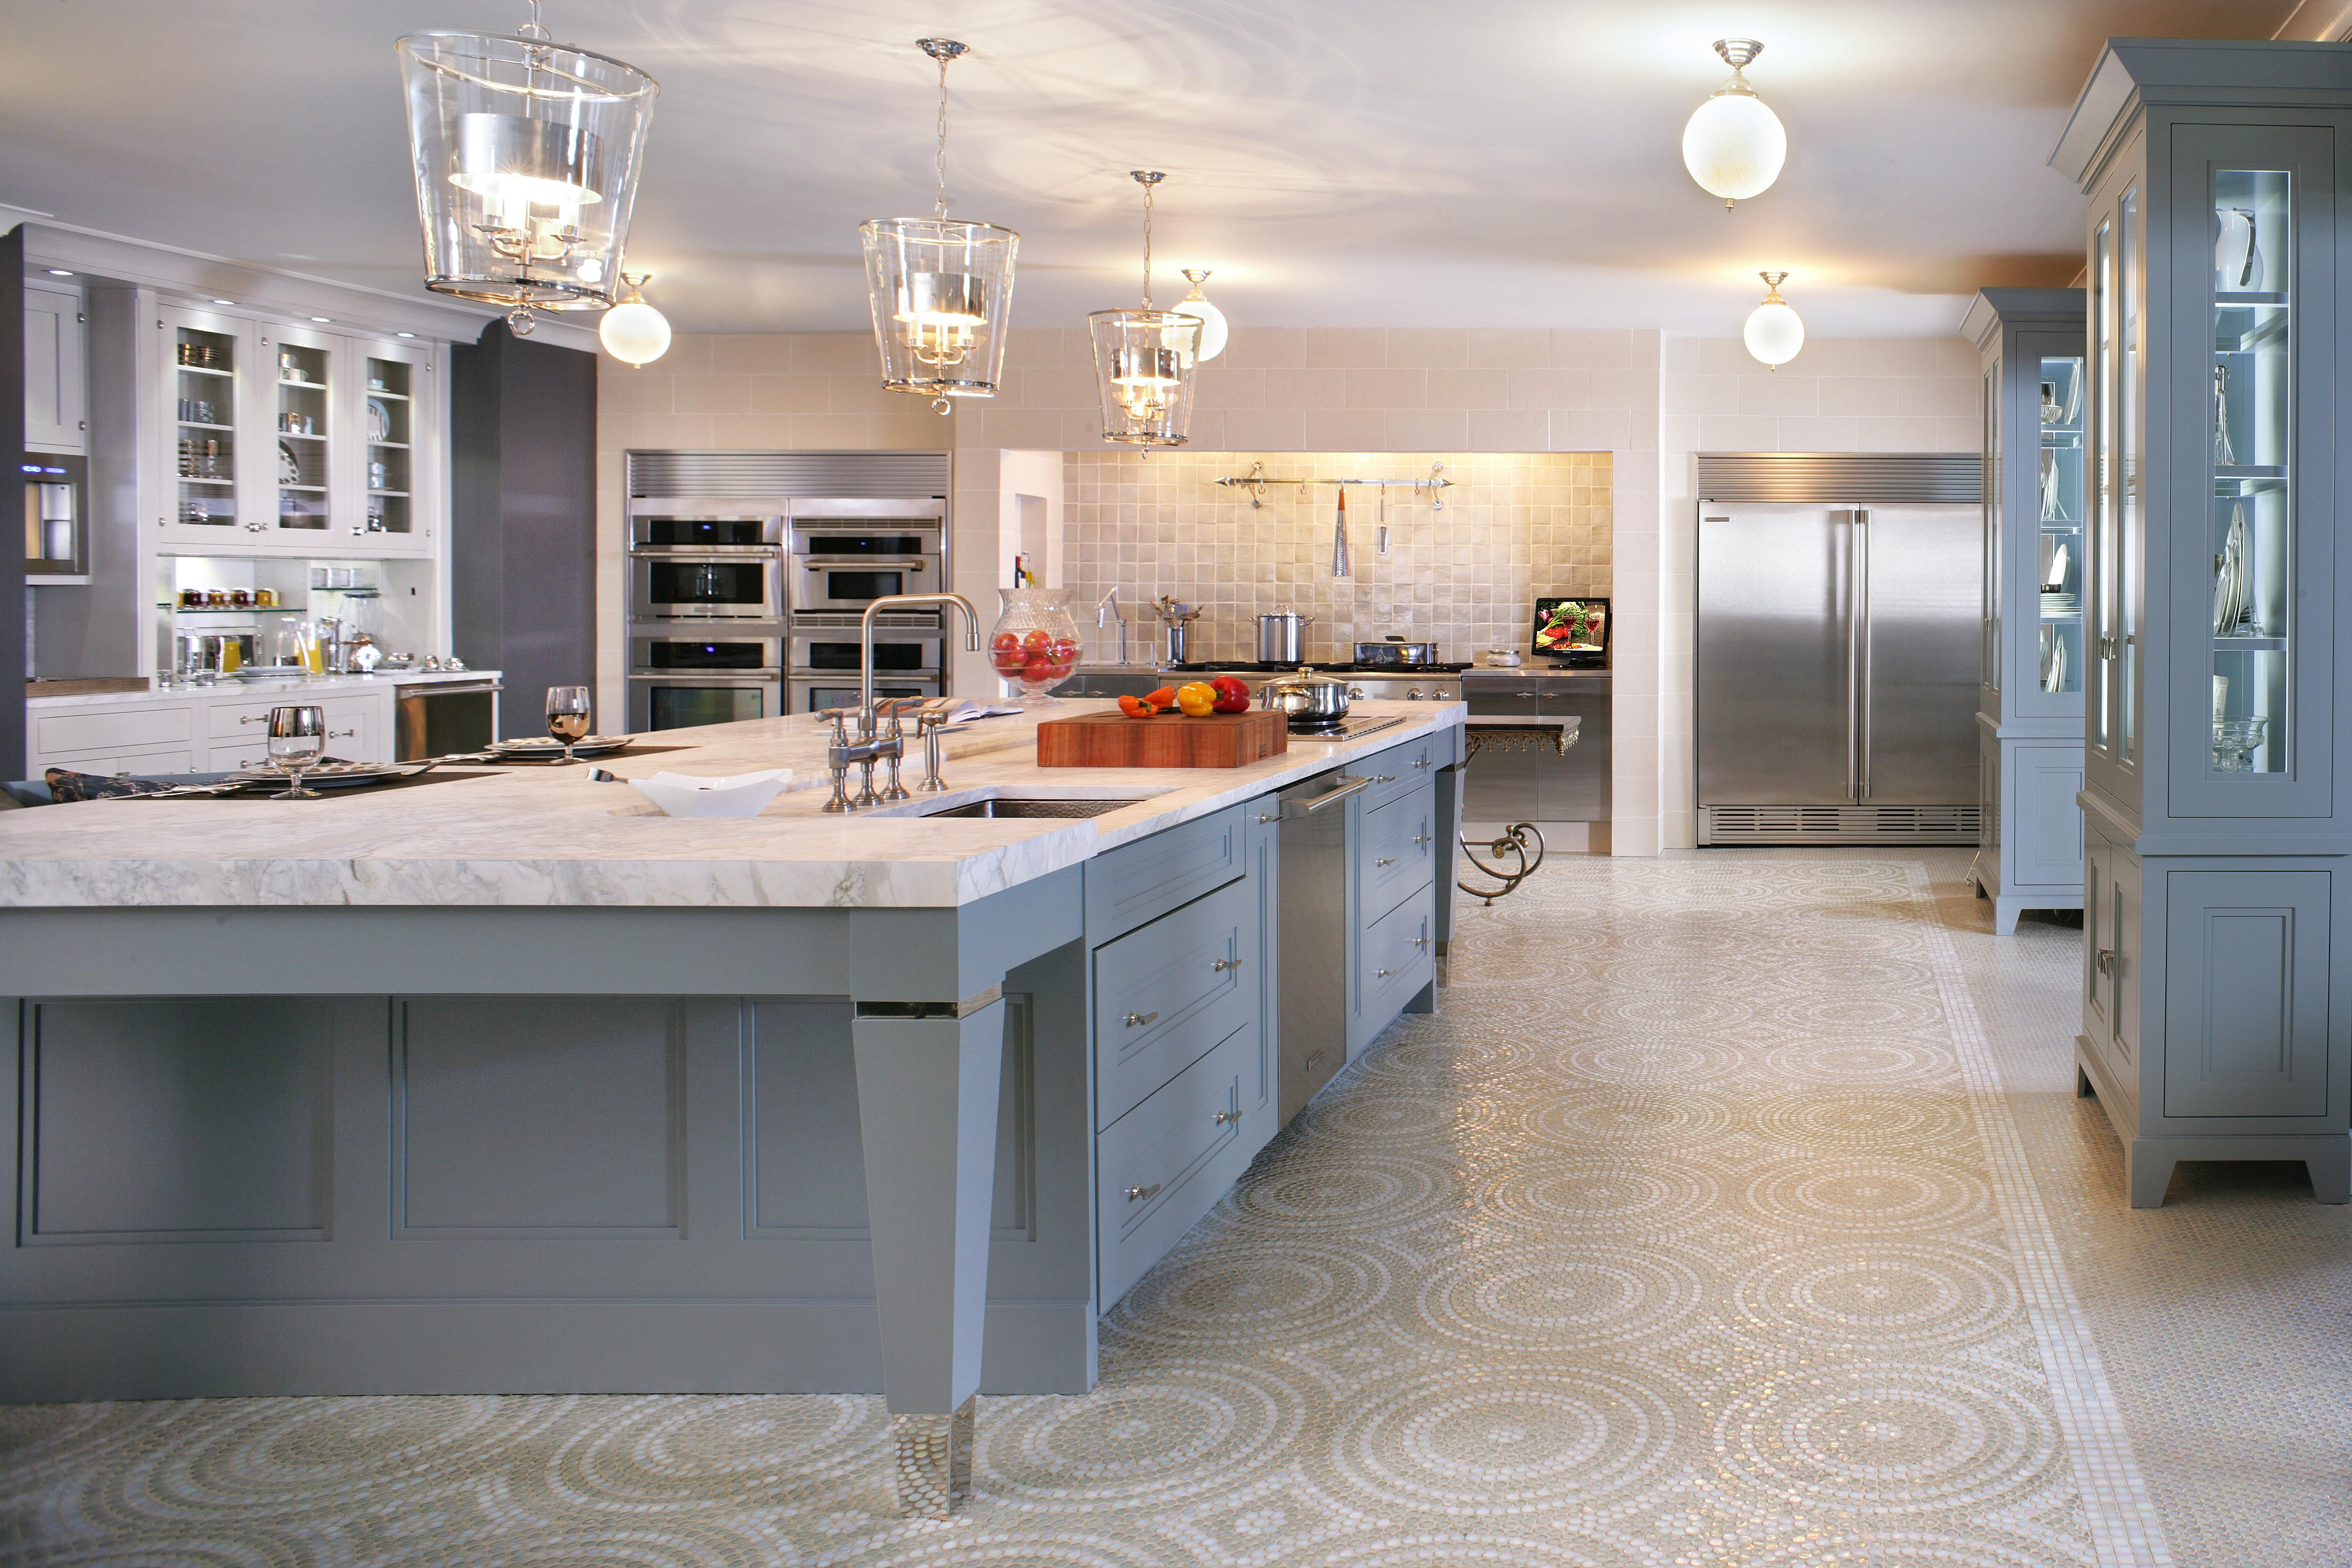 Home St Charles Of New York Luxury Kitchen Design Beautiful Kitchens Beautiful Kitchen Designs